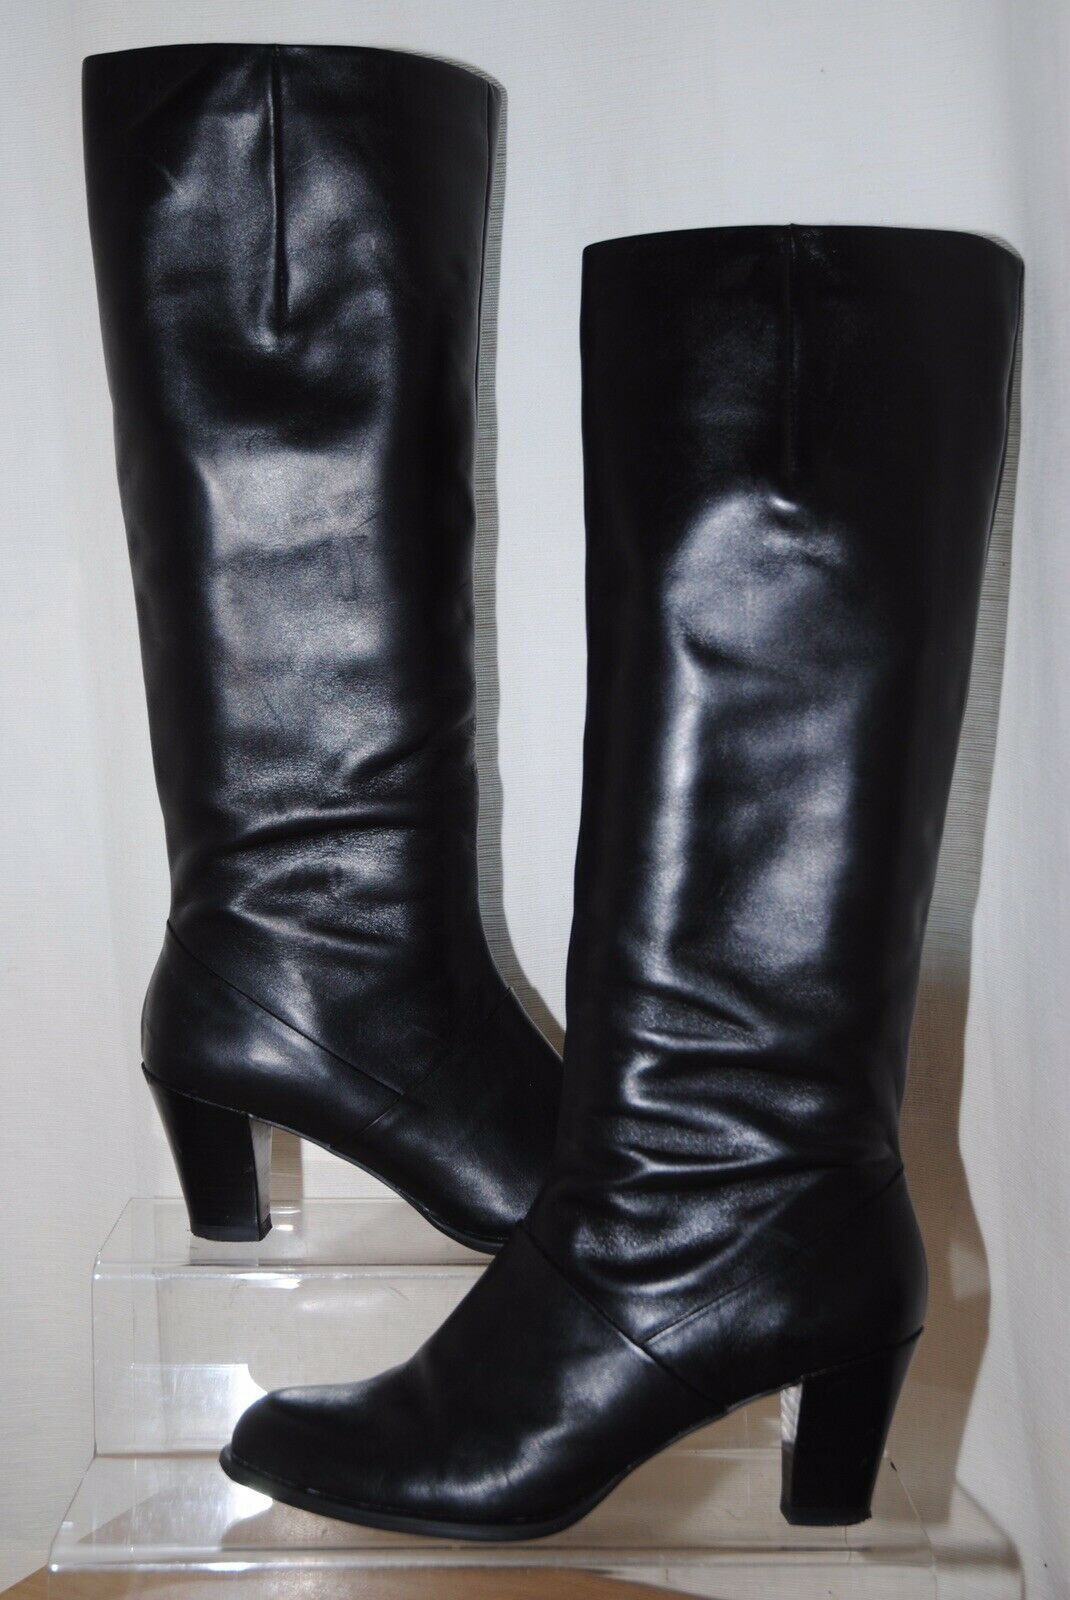 vela Caucho Ir a caminar  Ladies Clarks Stylish Knee Length BOOTS Caddy Belle 8 UK Black Leather D  for sale | eBay